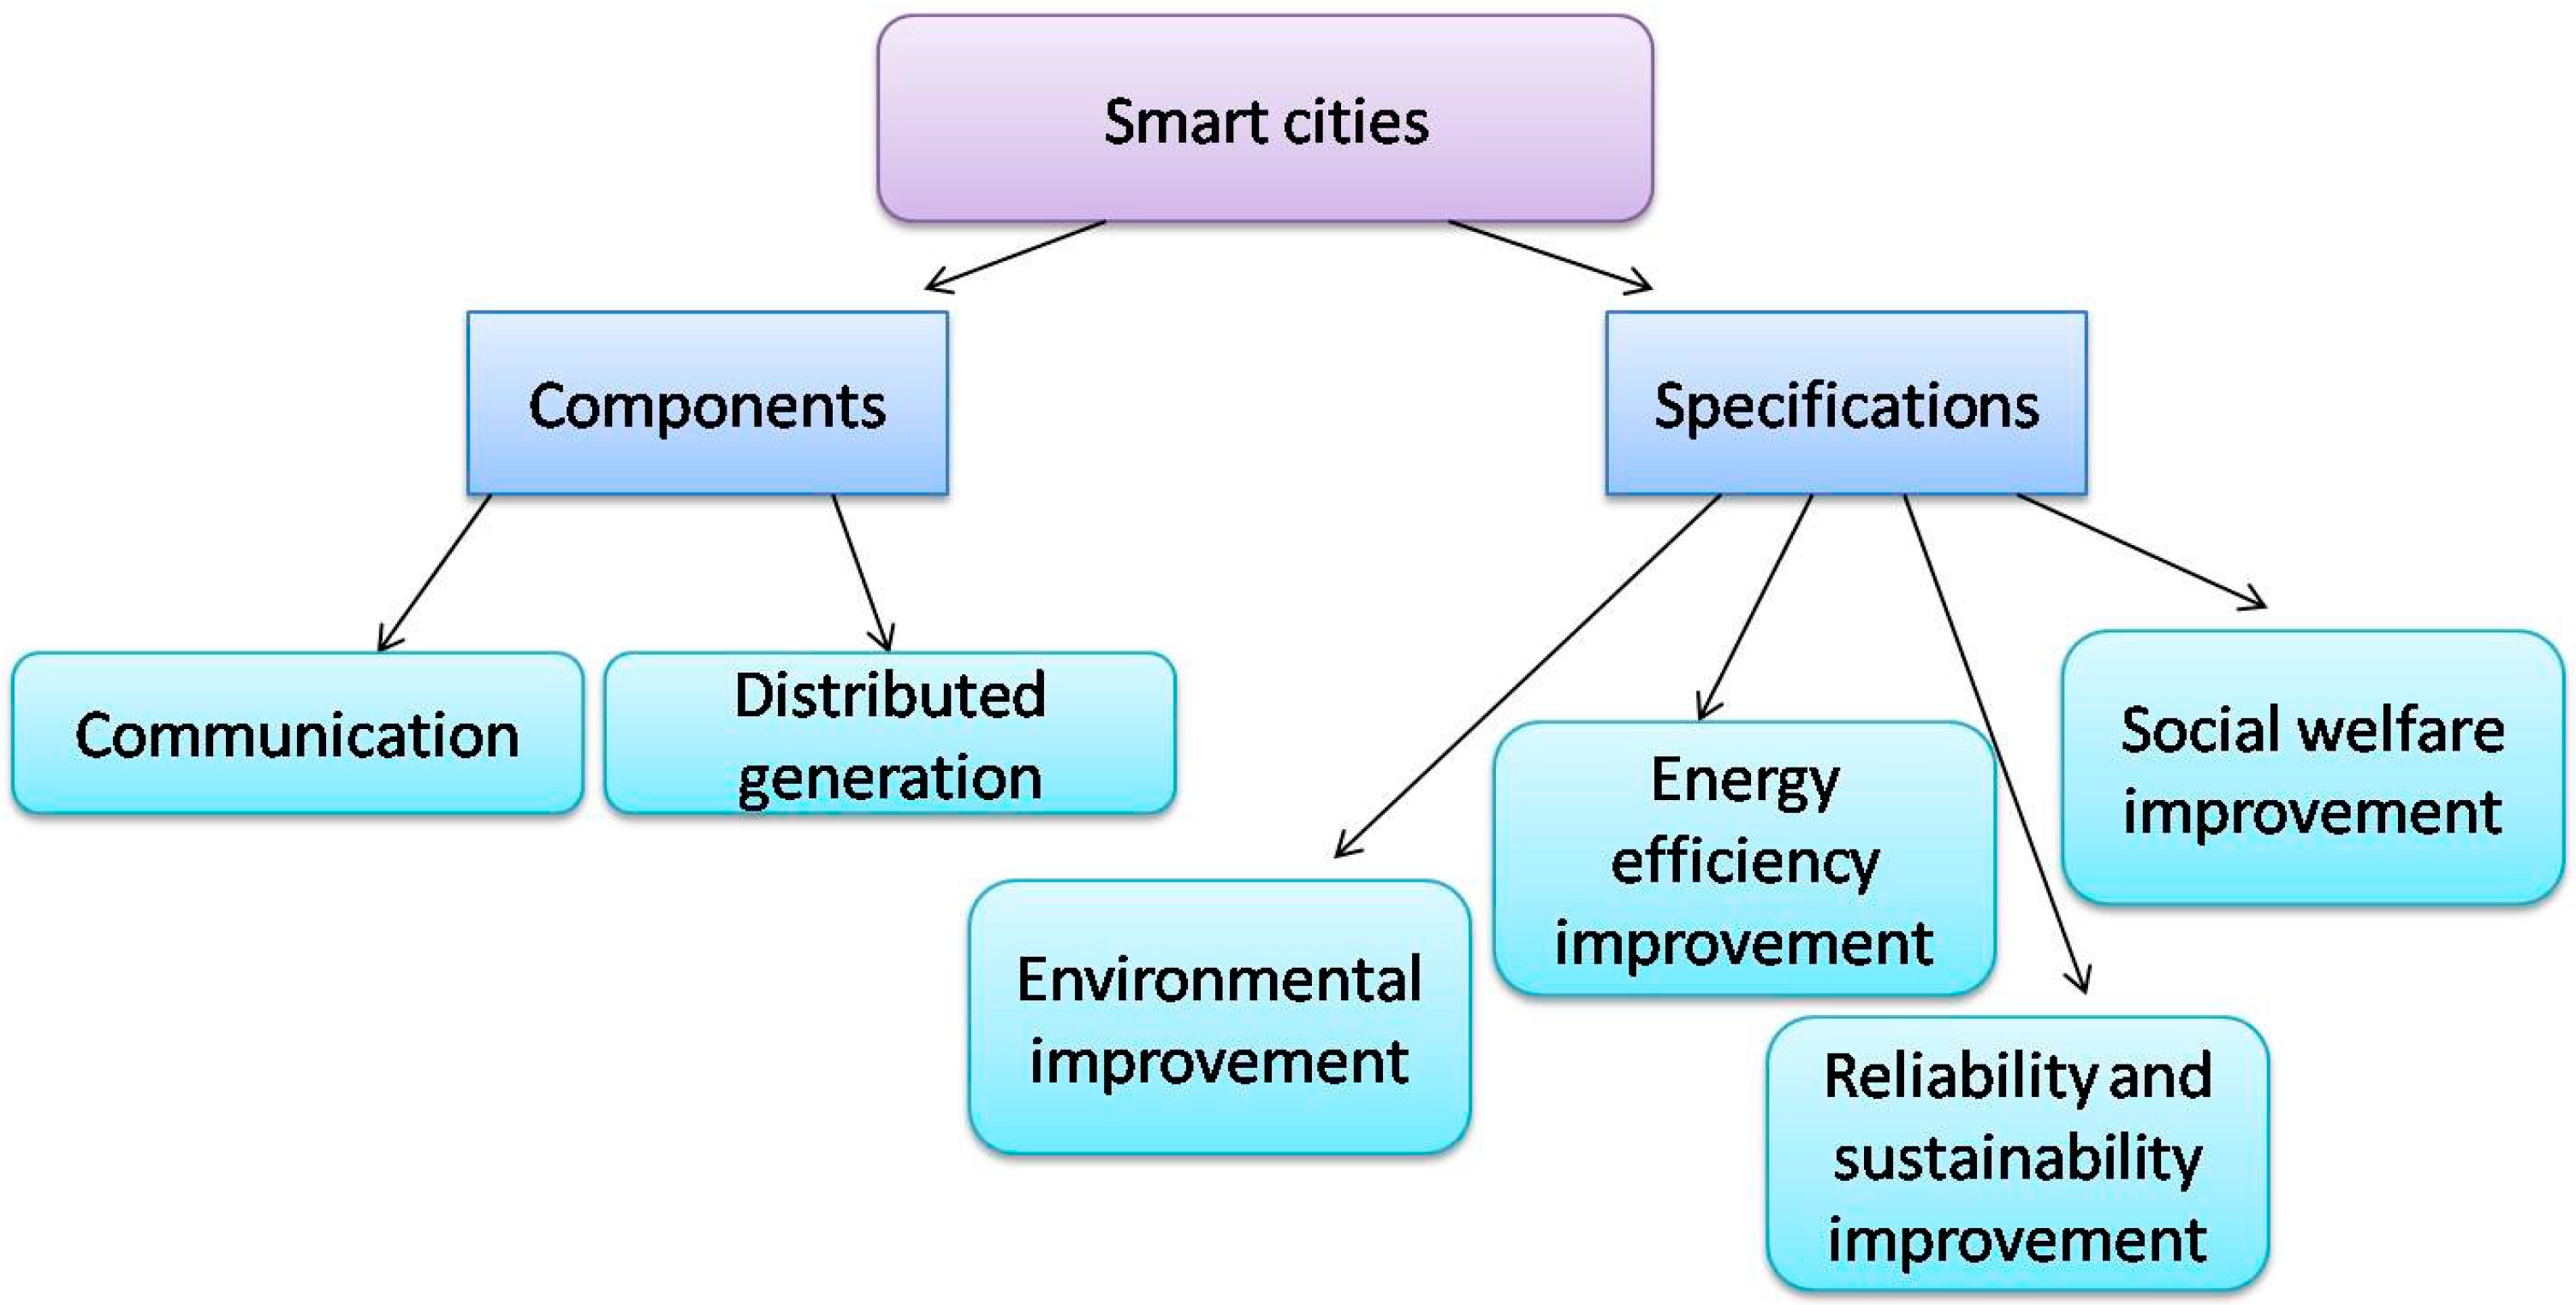 Energies | Free Full-Text | A Review of Smart Cities Based on the ...